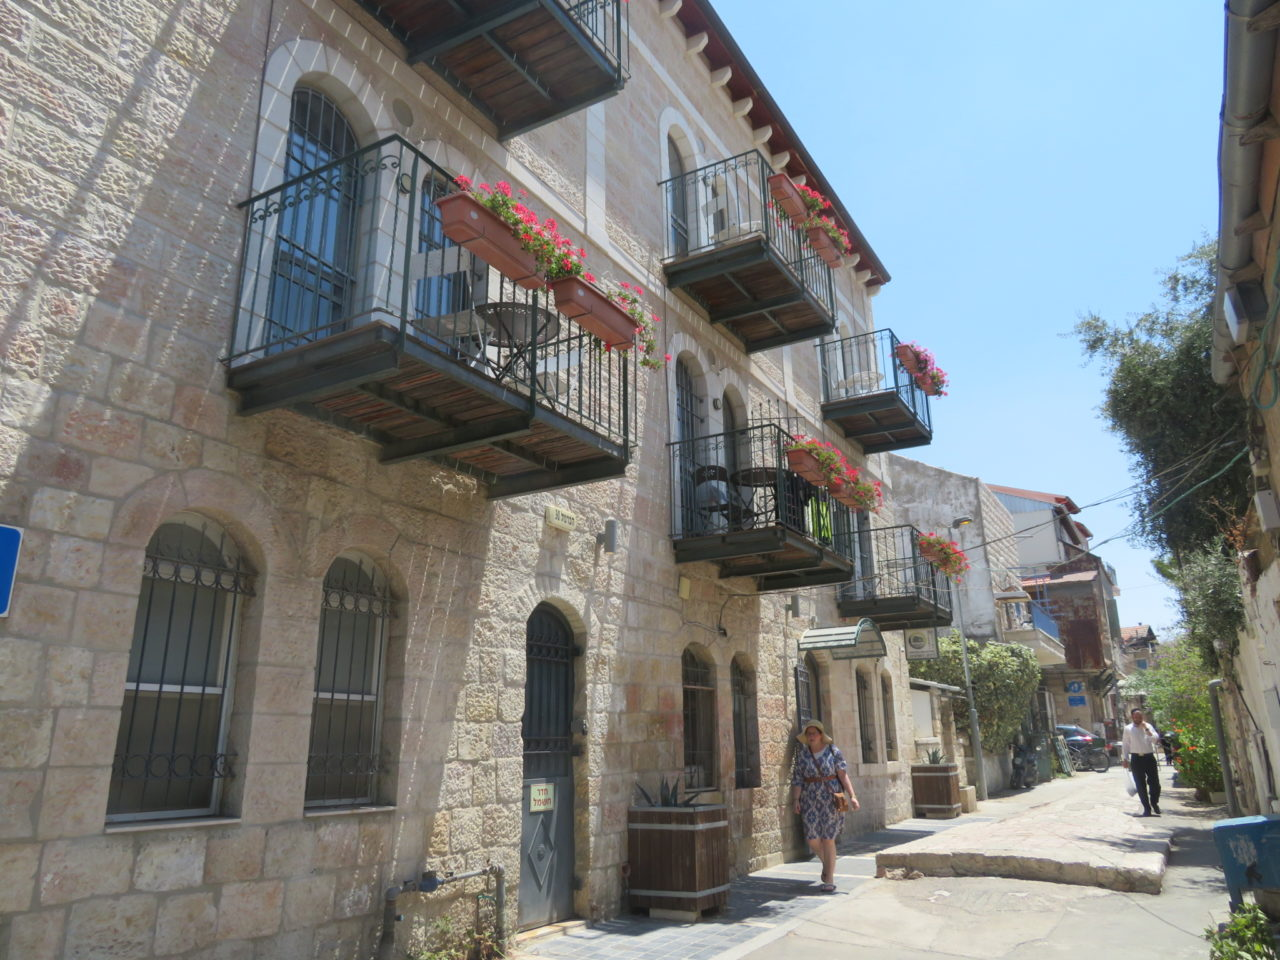 The joys of walking Jerusalem - the Nachlaot neighborhood